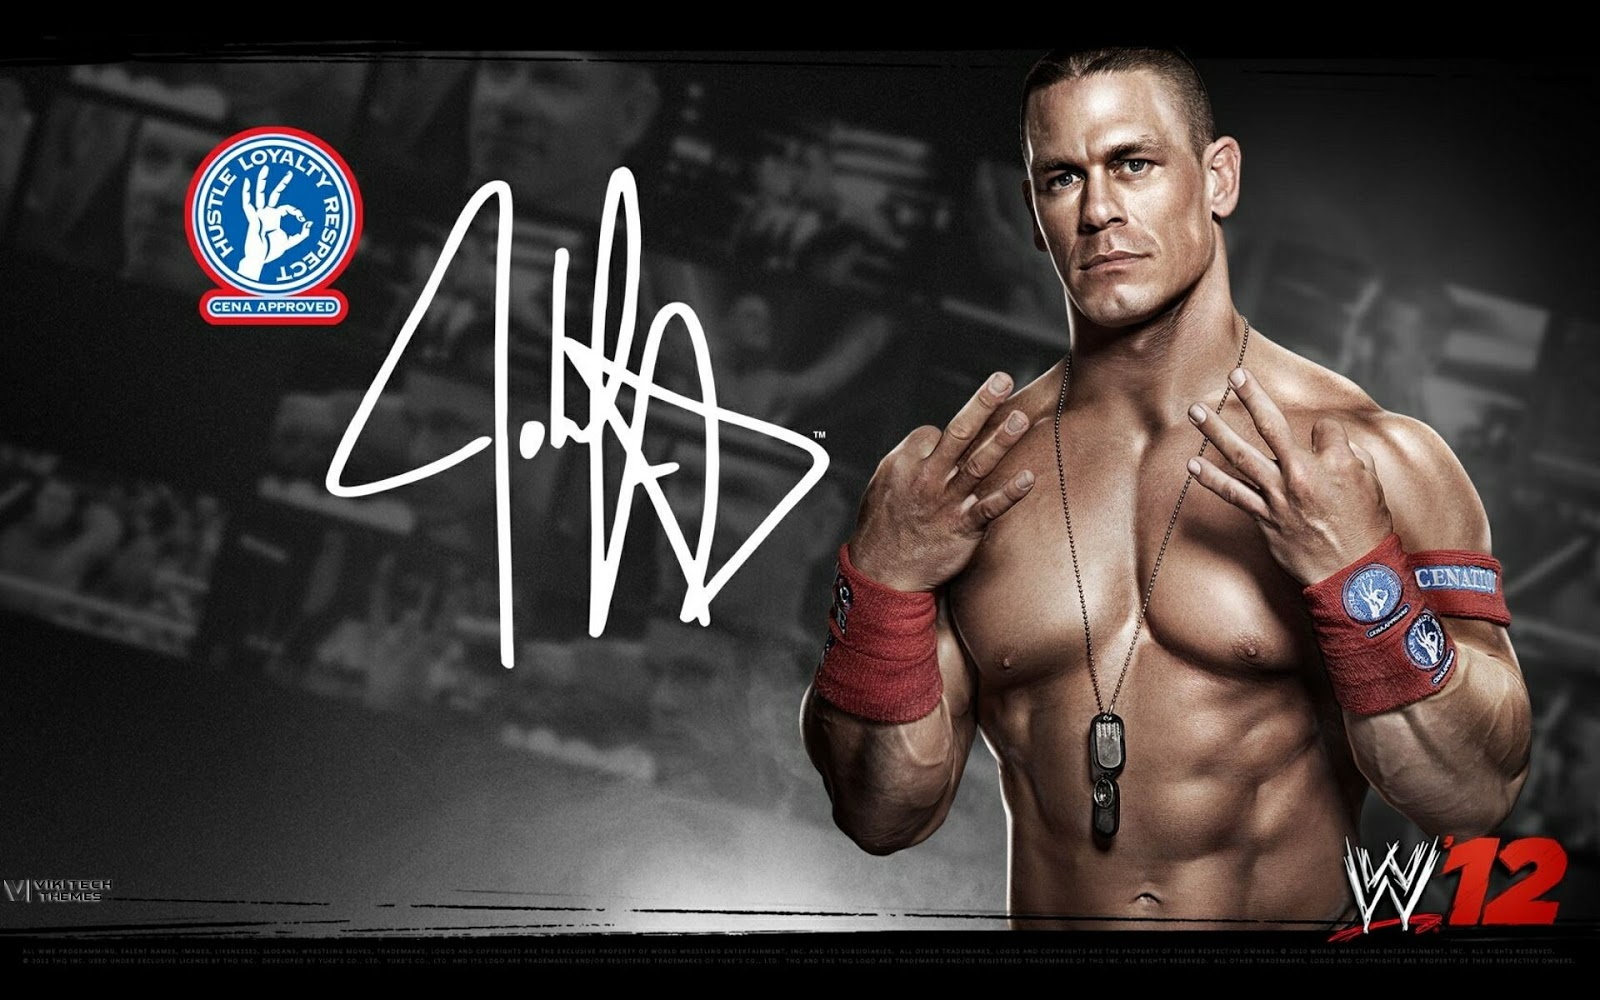 Wallpapers Of Wwe